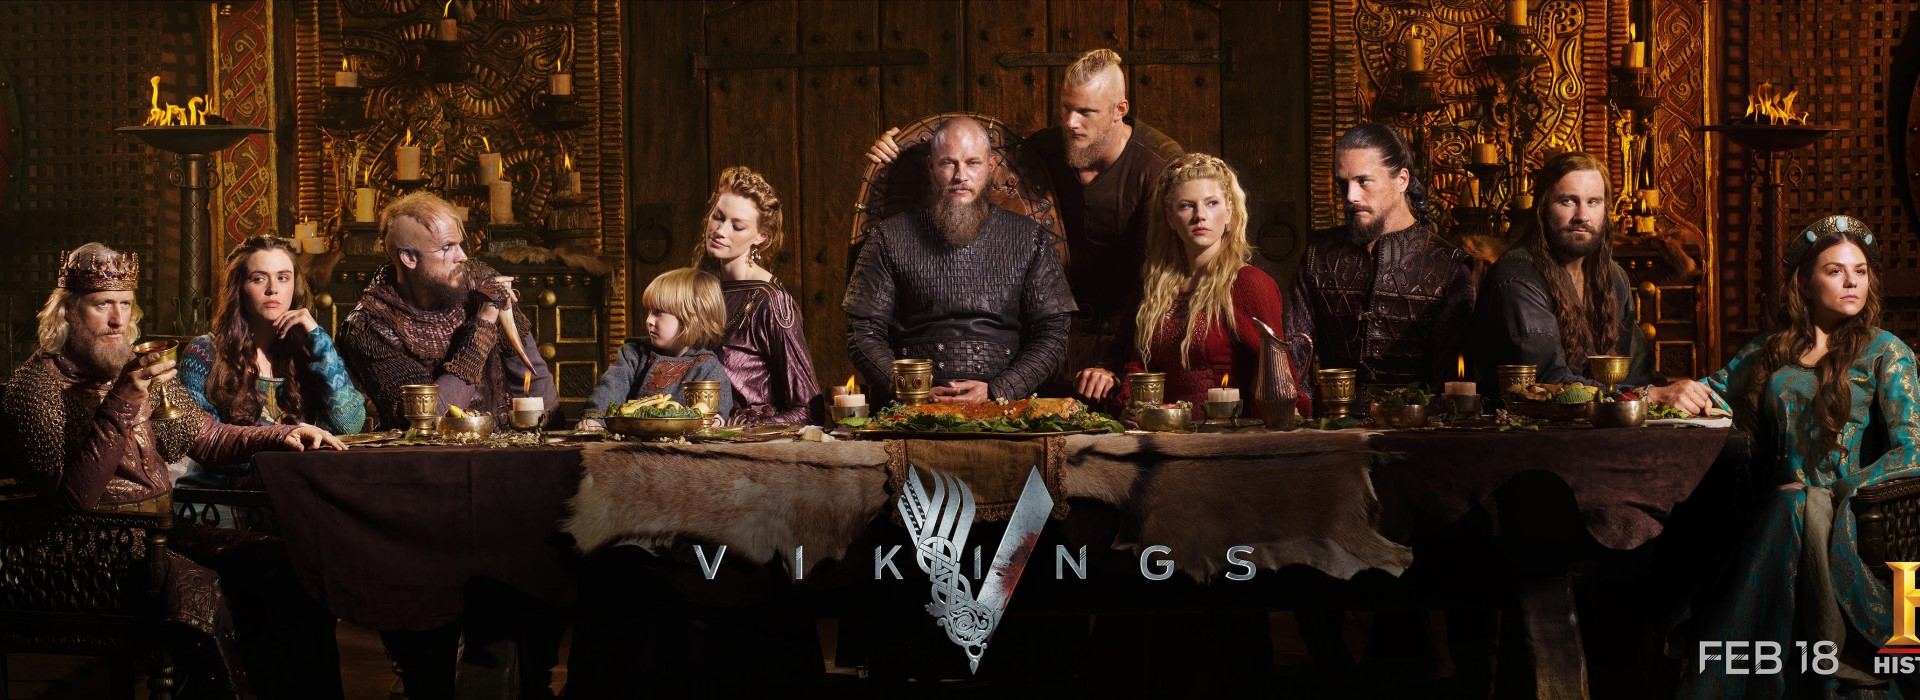 Vikings complete season 4 [Blu-Ray] 720p (Episodes 1-20) cover